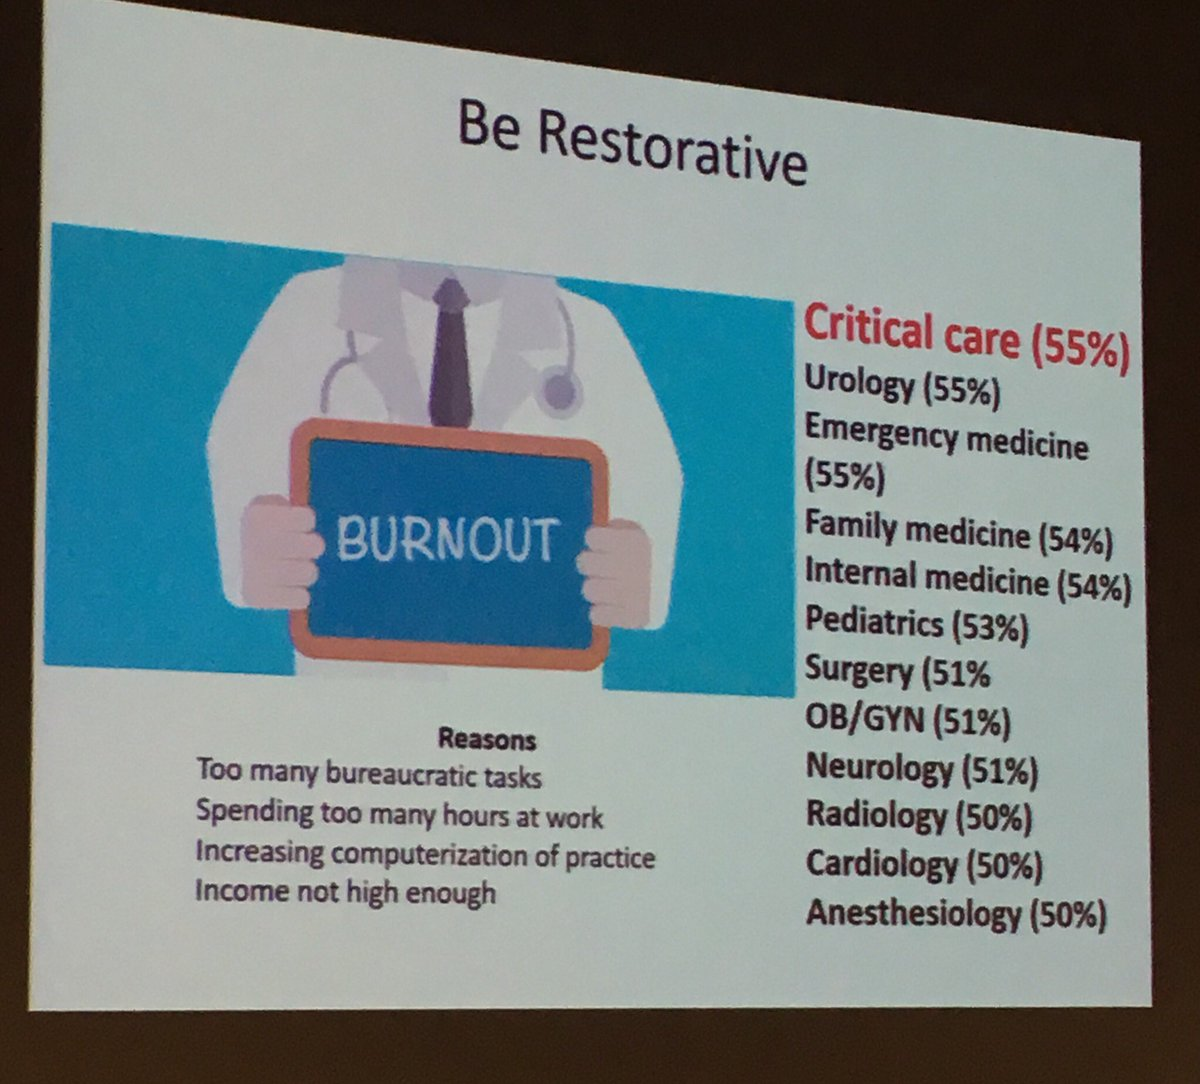 Dr  @gchupp is highlighting a very important issue, #burnout